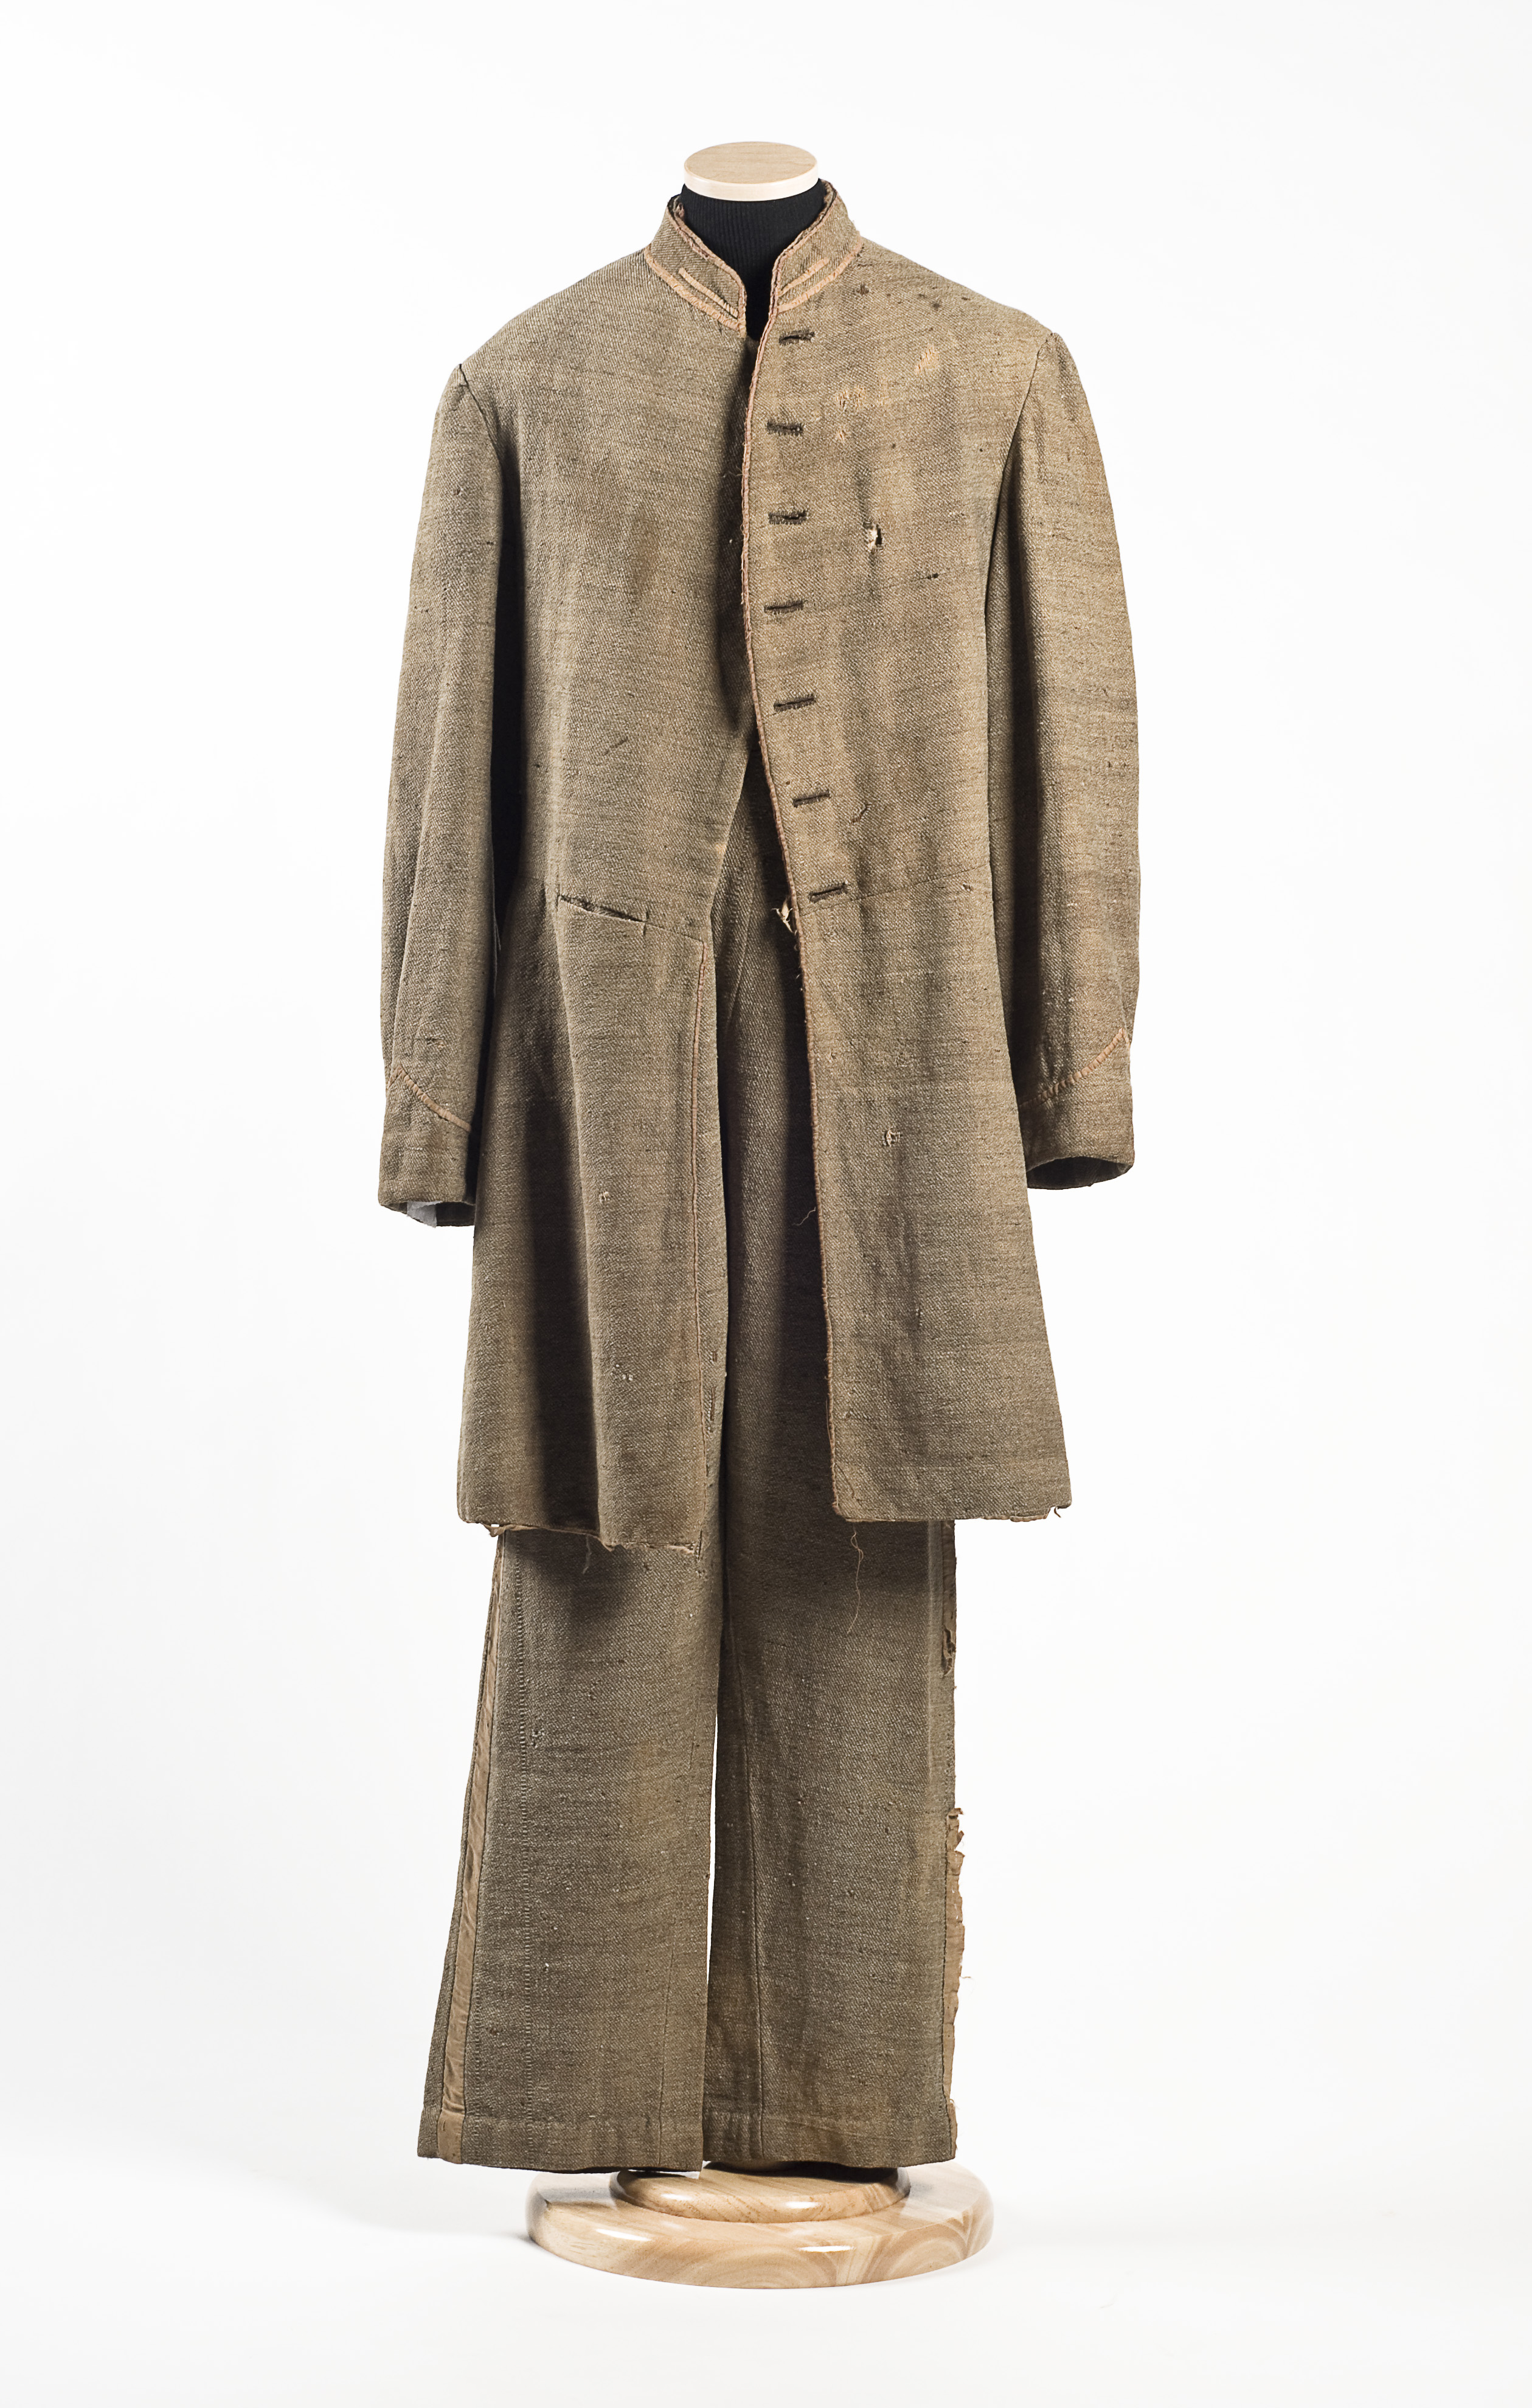 Blood-stained Civil War uniform at Charleston Museum